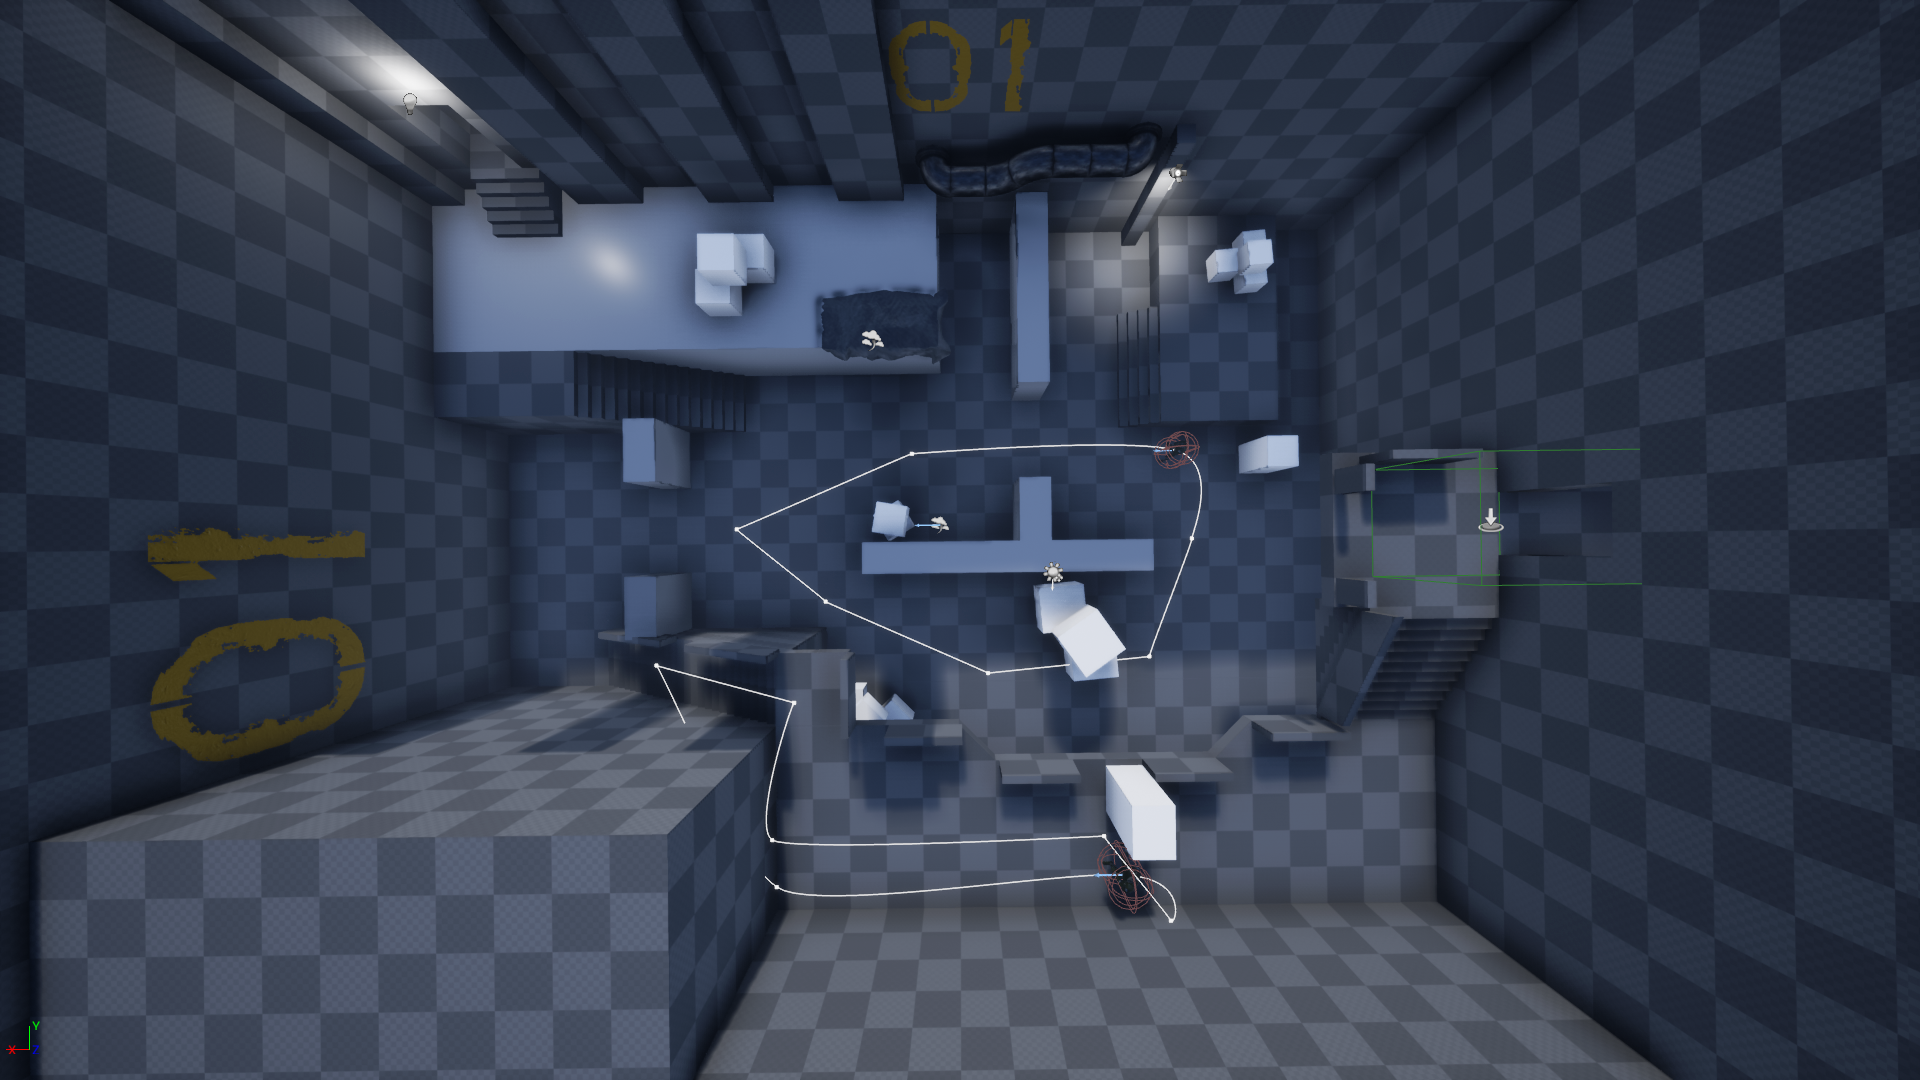 Early version of the level, a lot of things have changed since this version. The base level design from the sketch is kept however, because I thought it worked quite well.